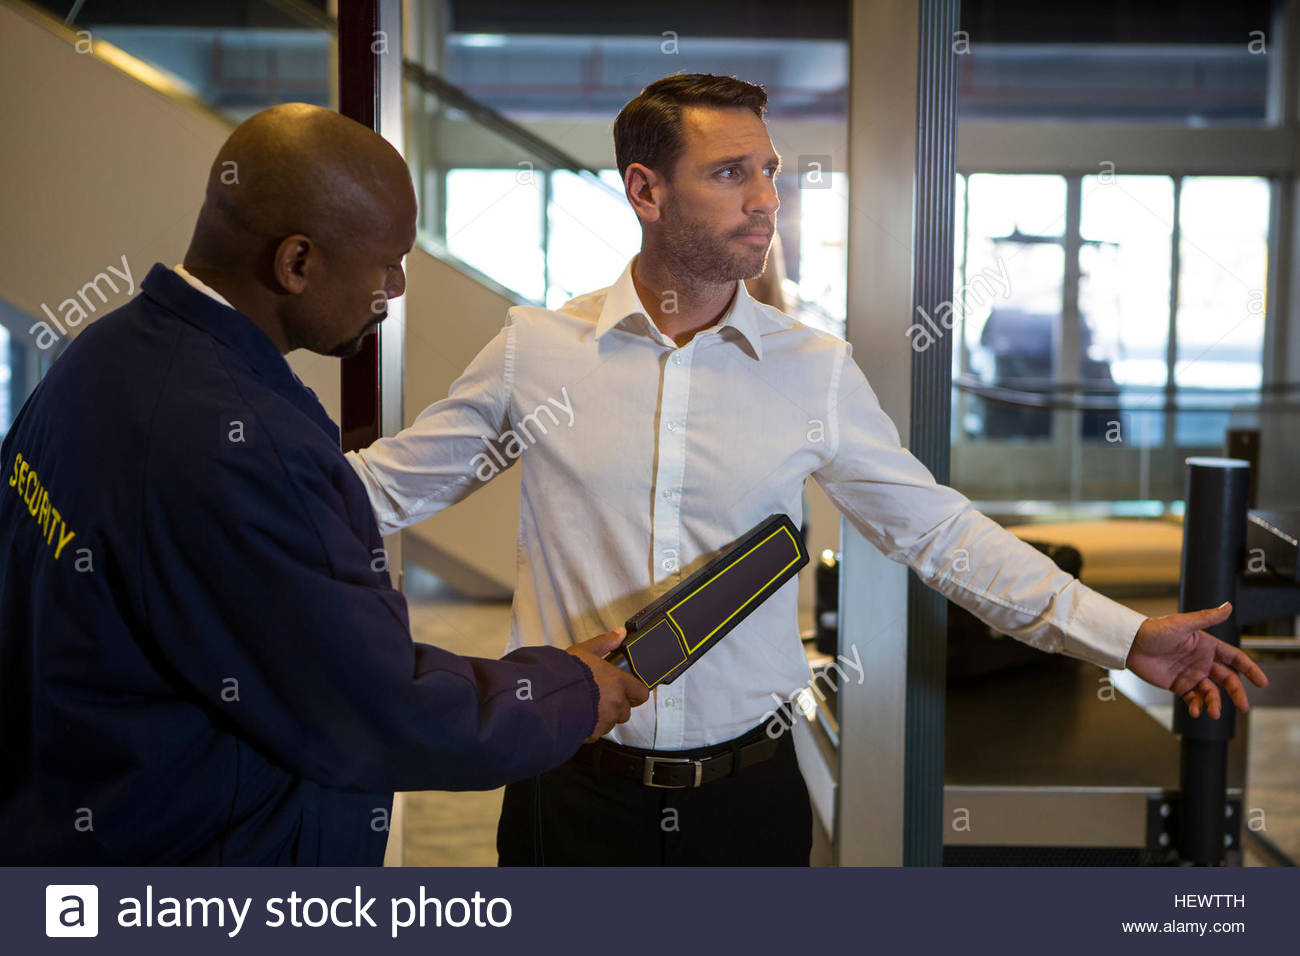 Image: Alamy Stock Photo